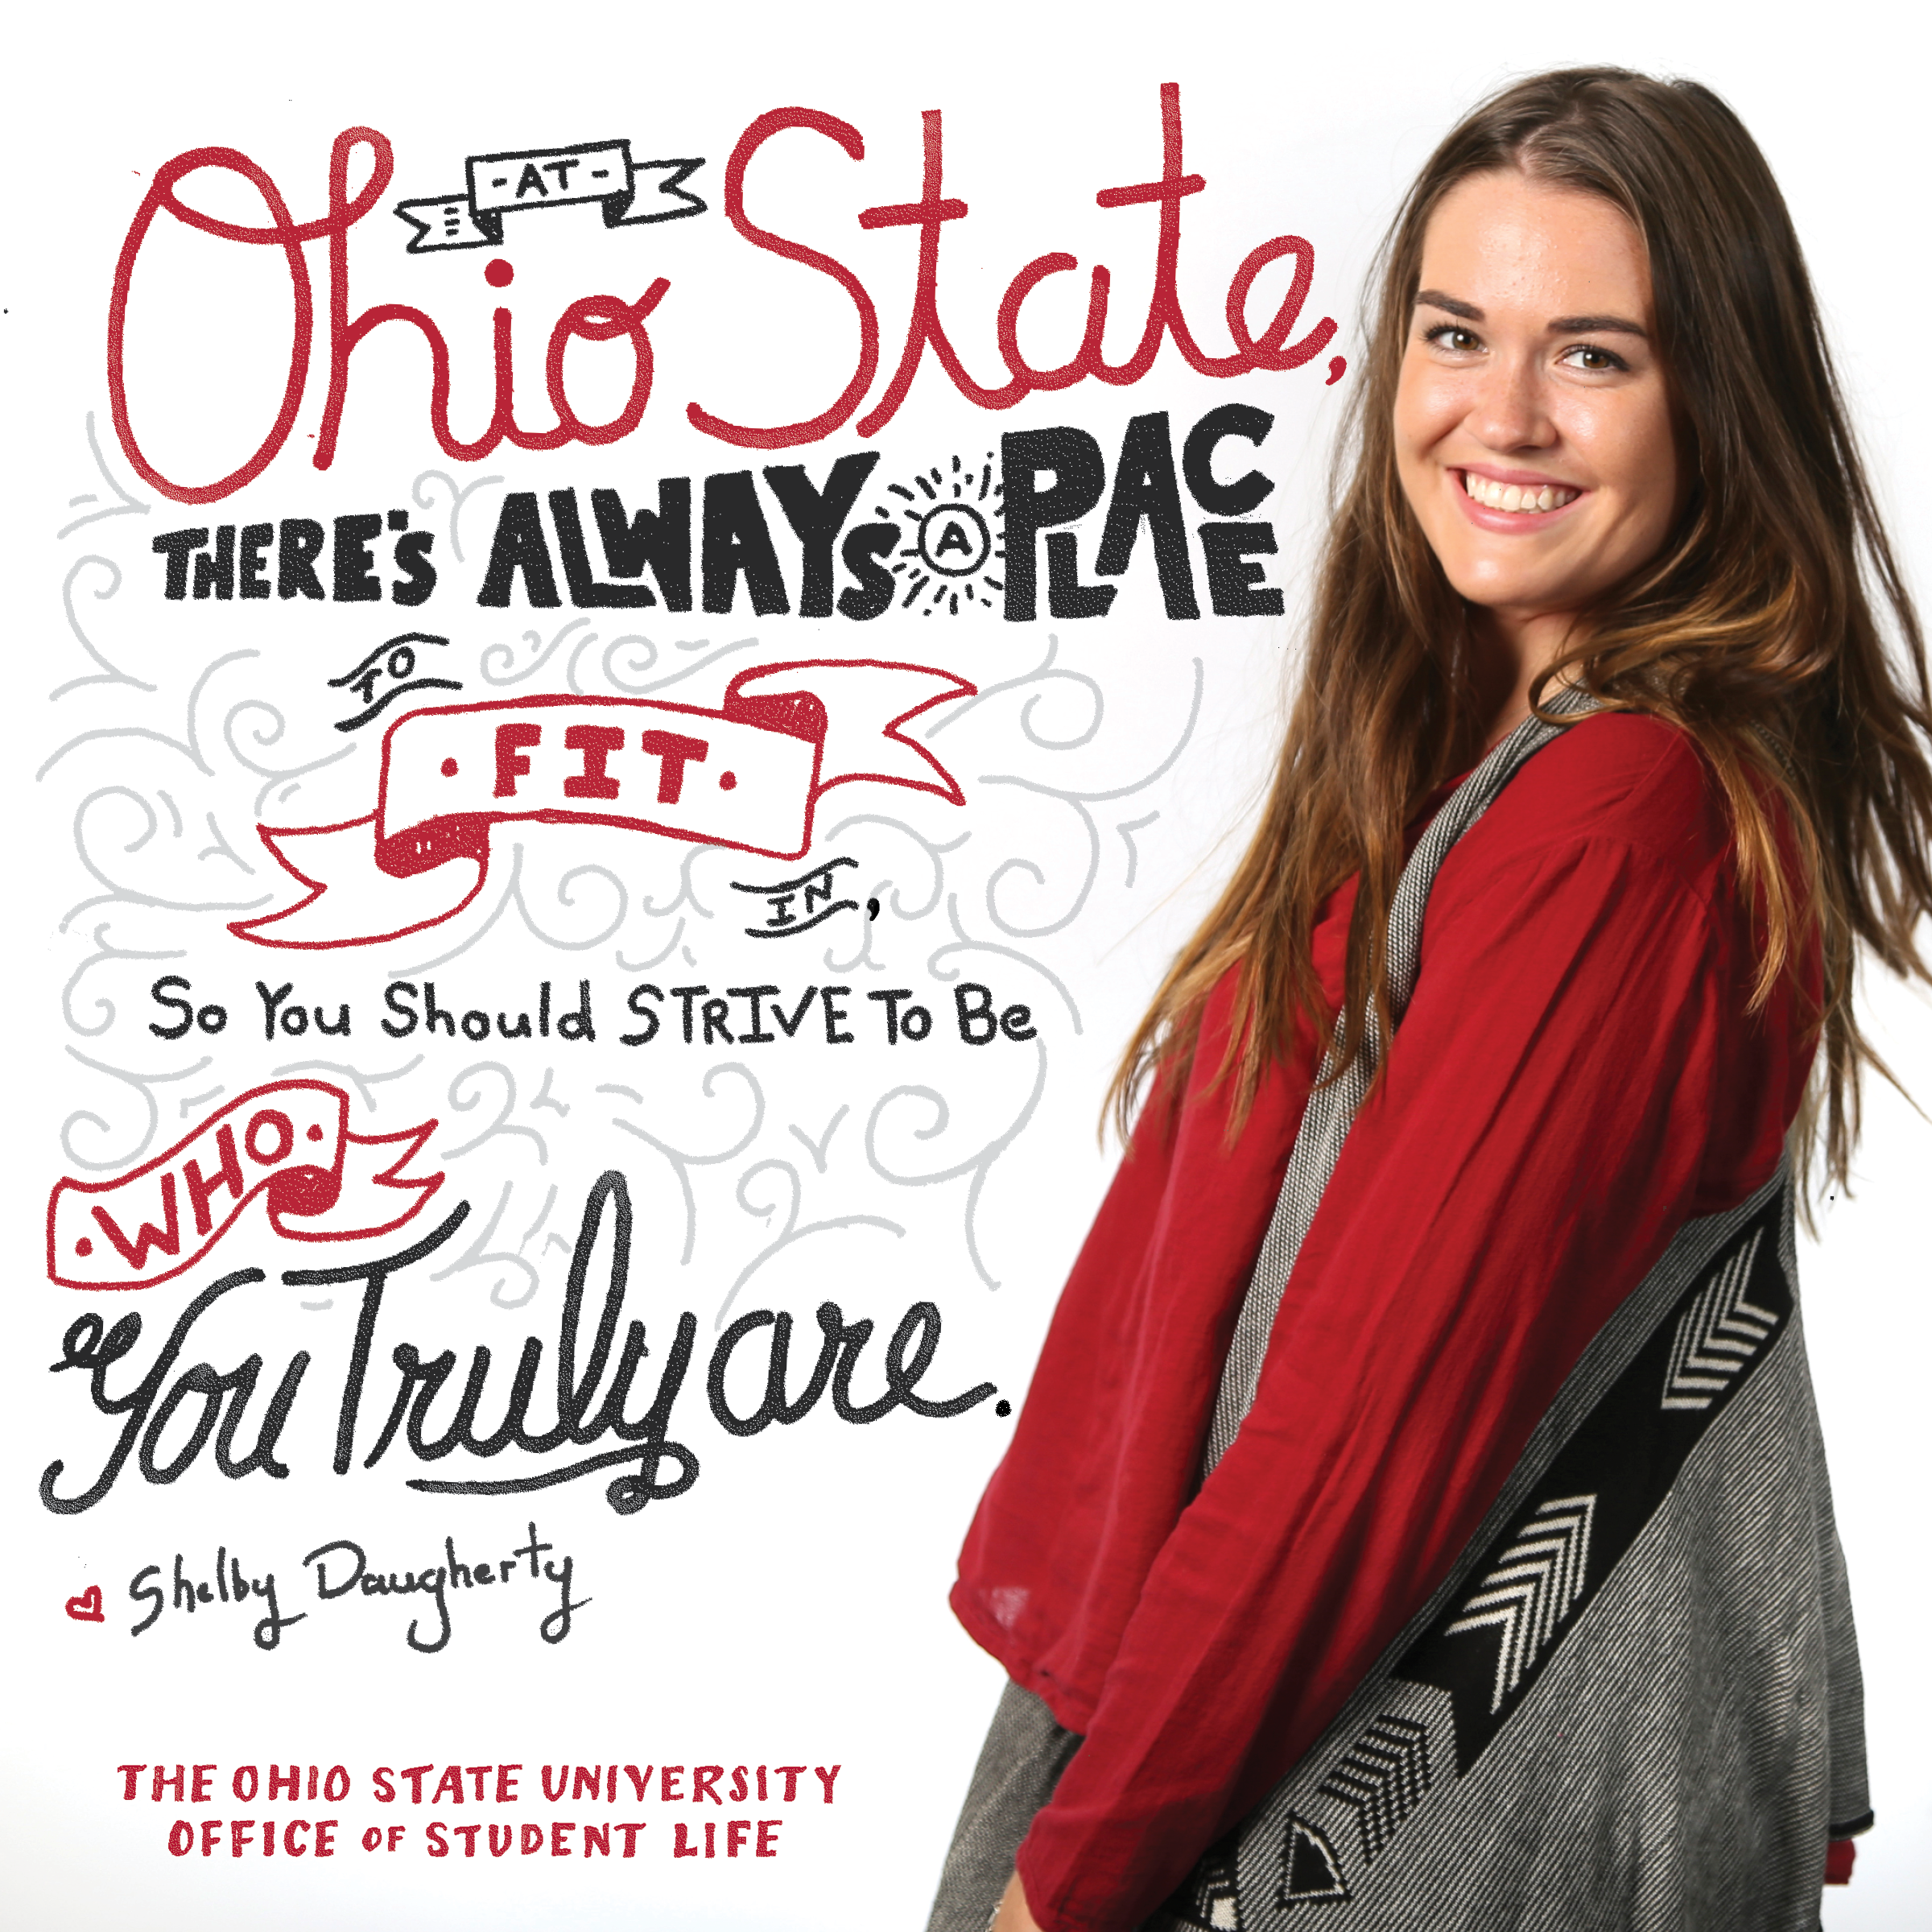 ohio state university college admission essay Ohio state university application essay - instead of concerning about term paper writing get the needed assistance here proposals and essays at most attractive prices.